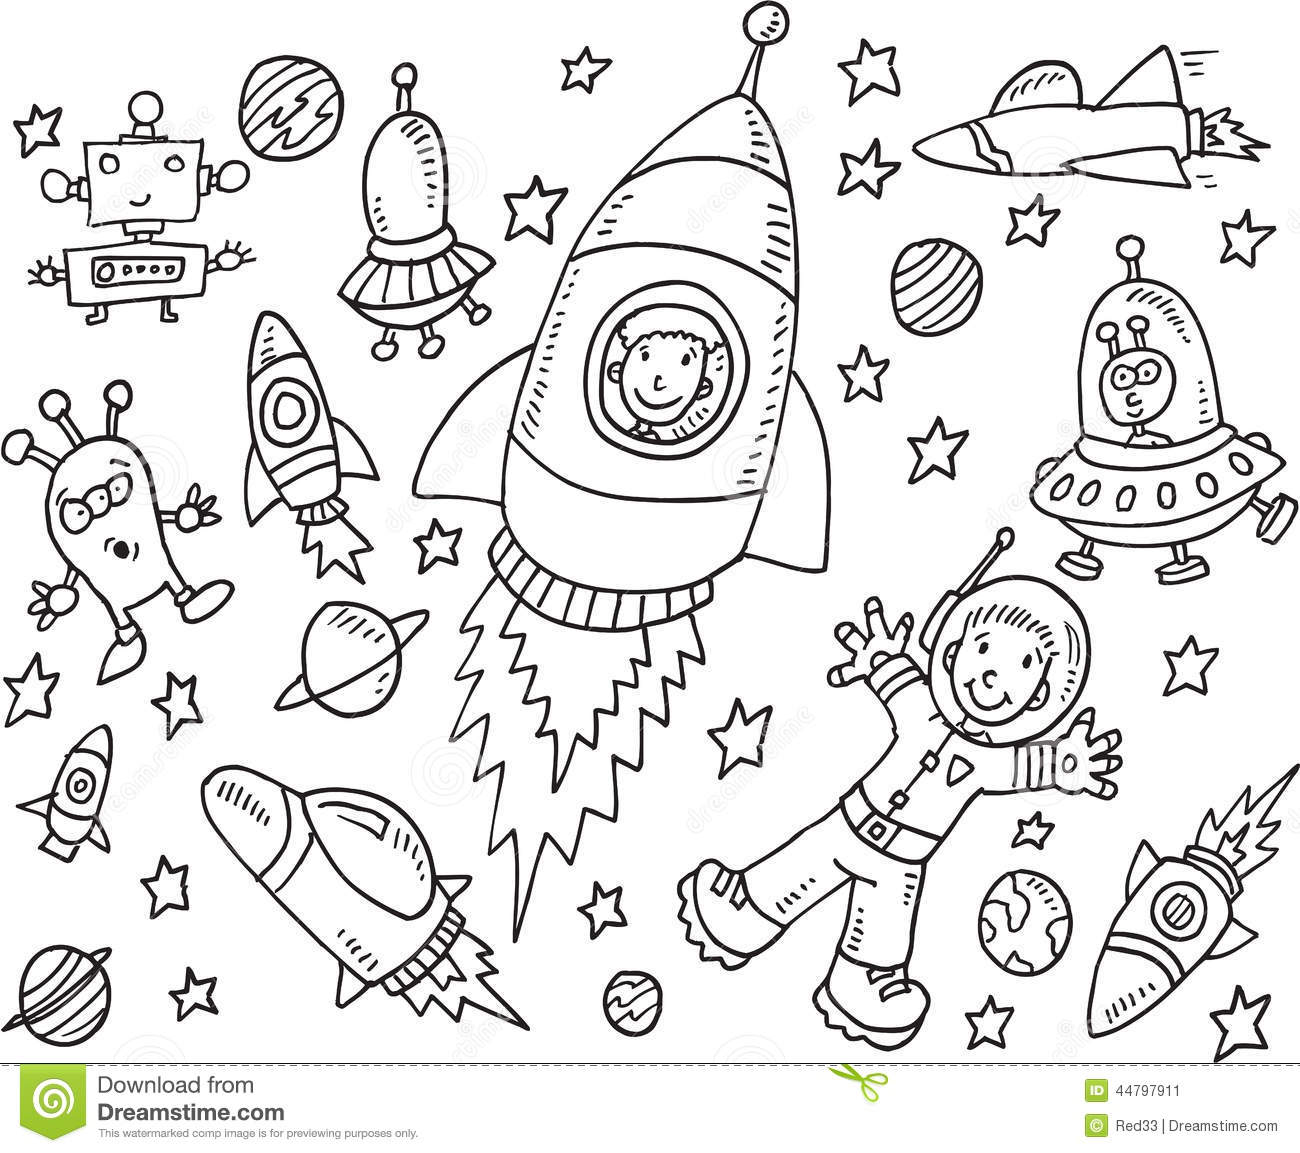 Outer space clipart black and white clipart freeuse download Space Clip Art Black And White (103+ images in Collection ... clipart freeuse download